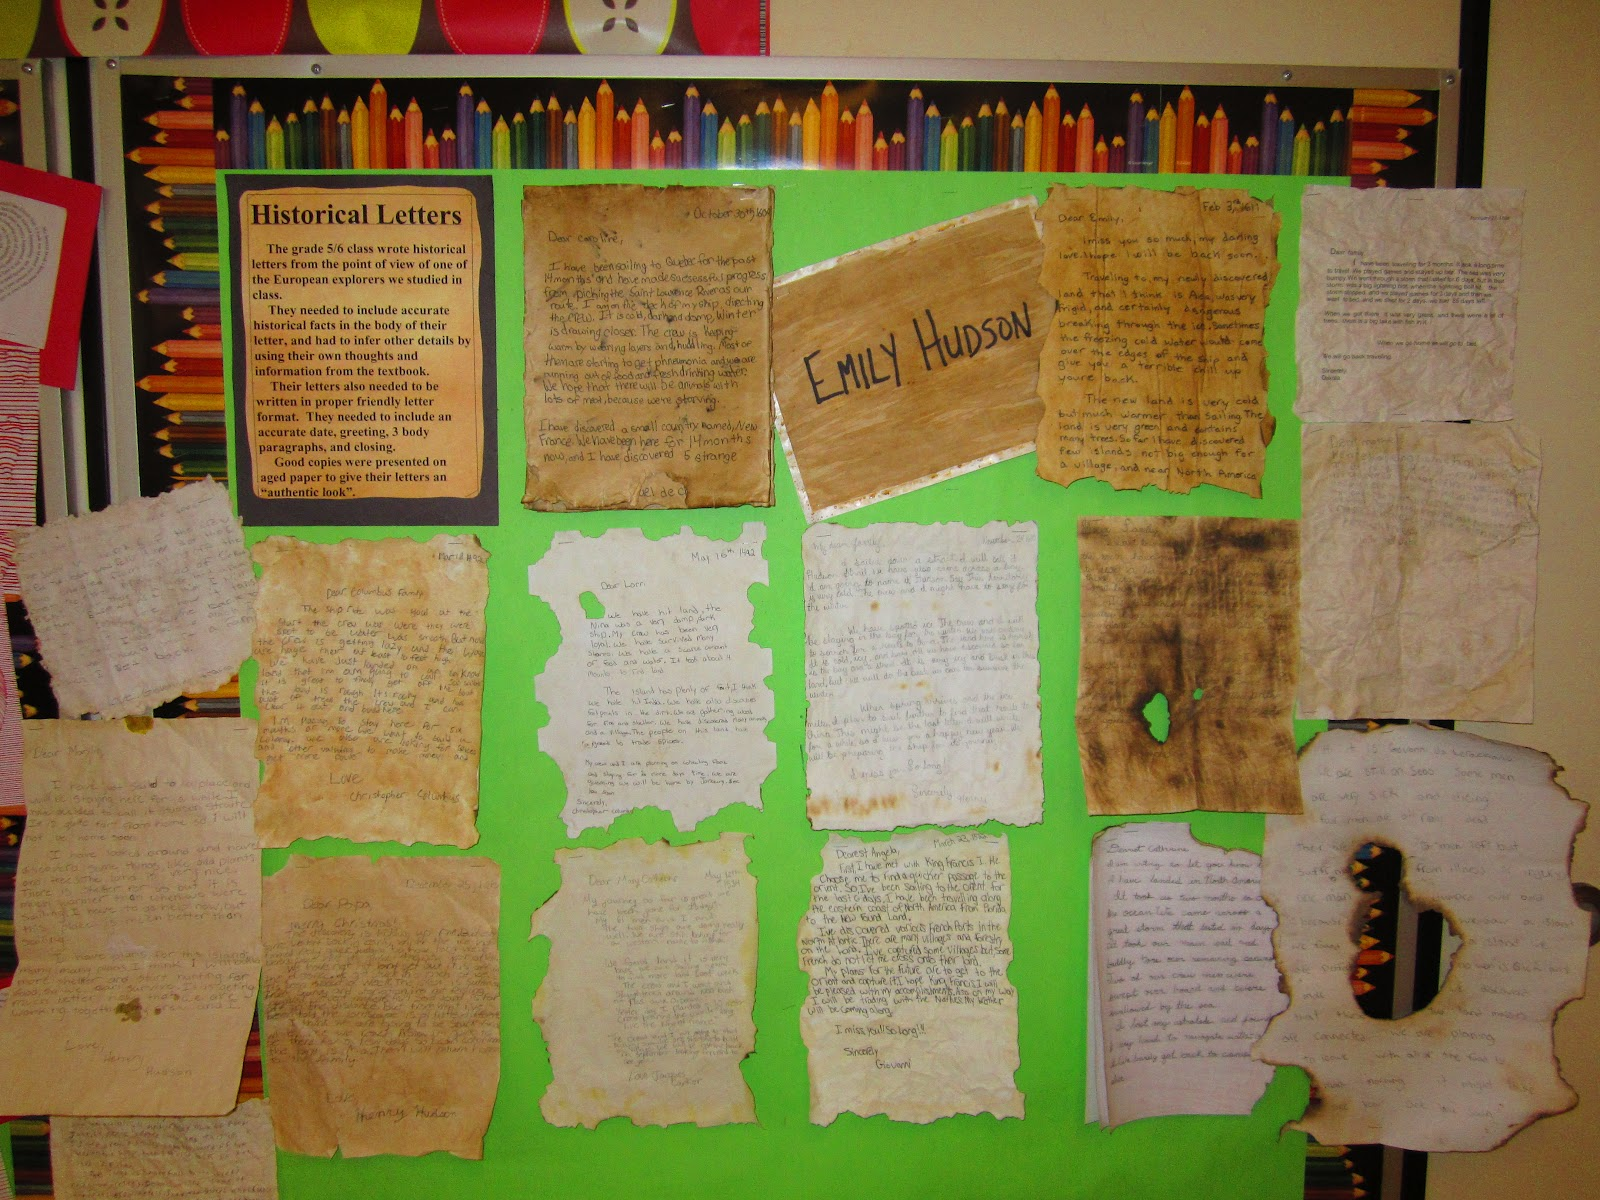 Runde S Room Writing Historical Letters